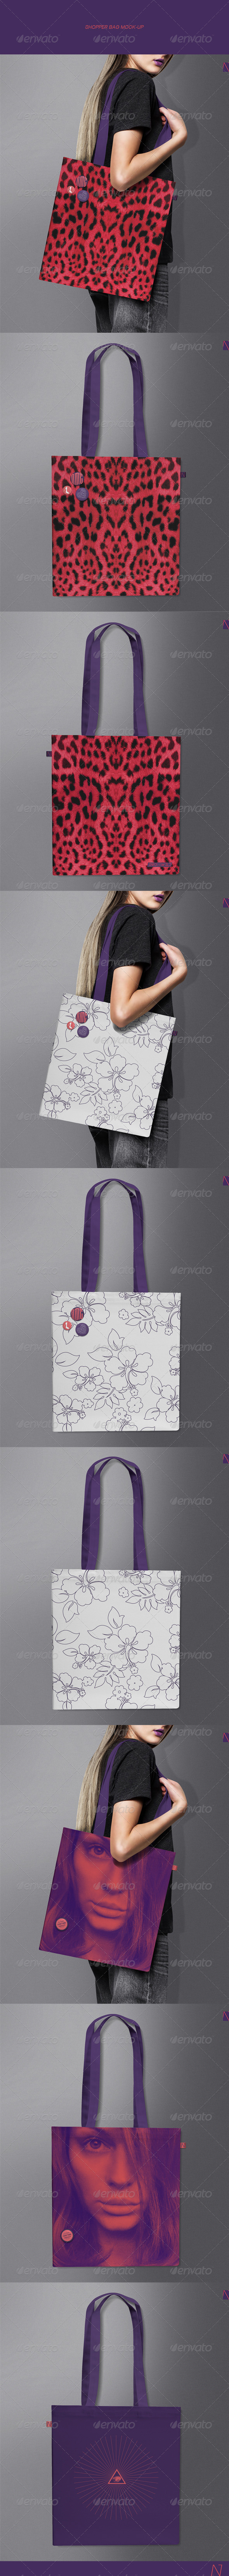 GraphicRiver Shopper Bag Mock-up 7708193